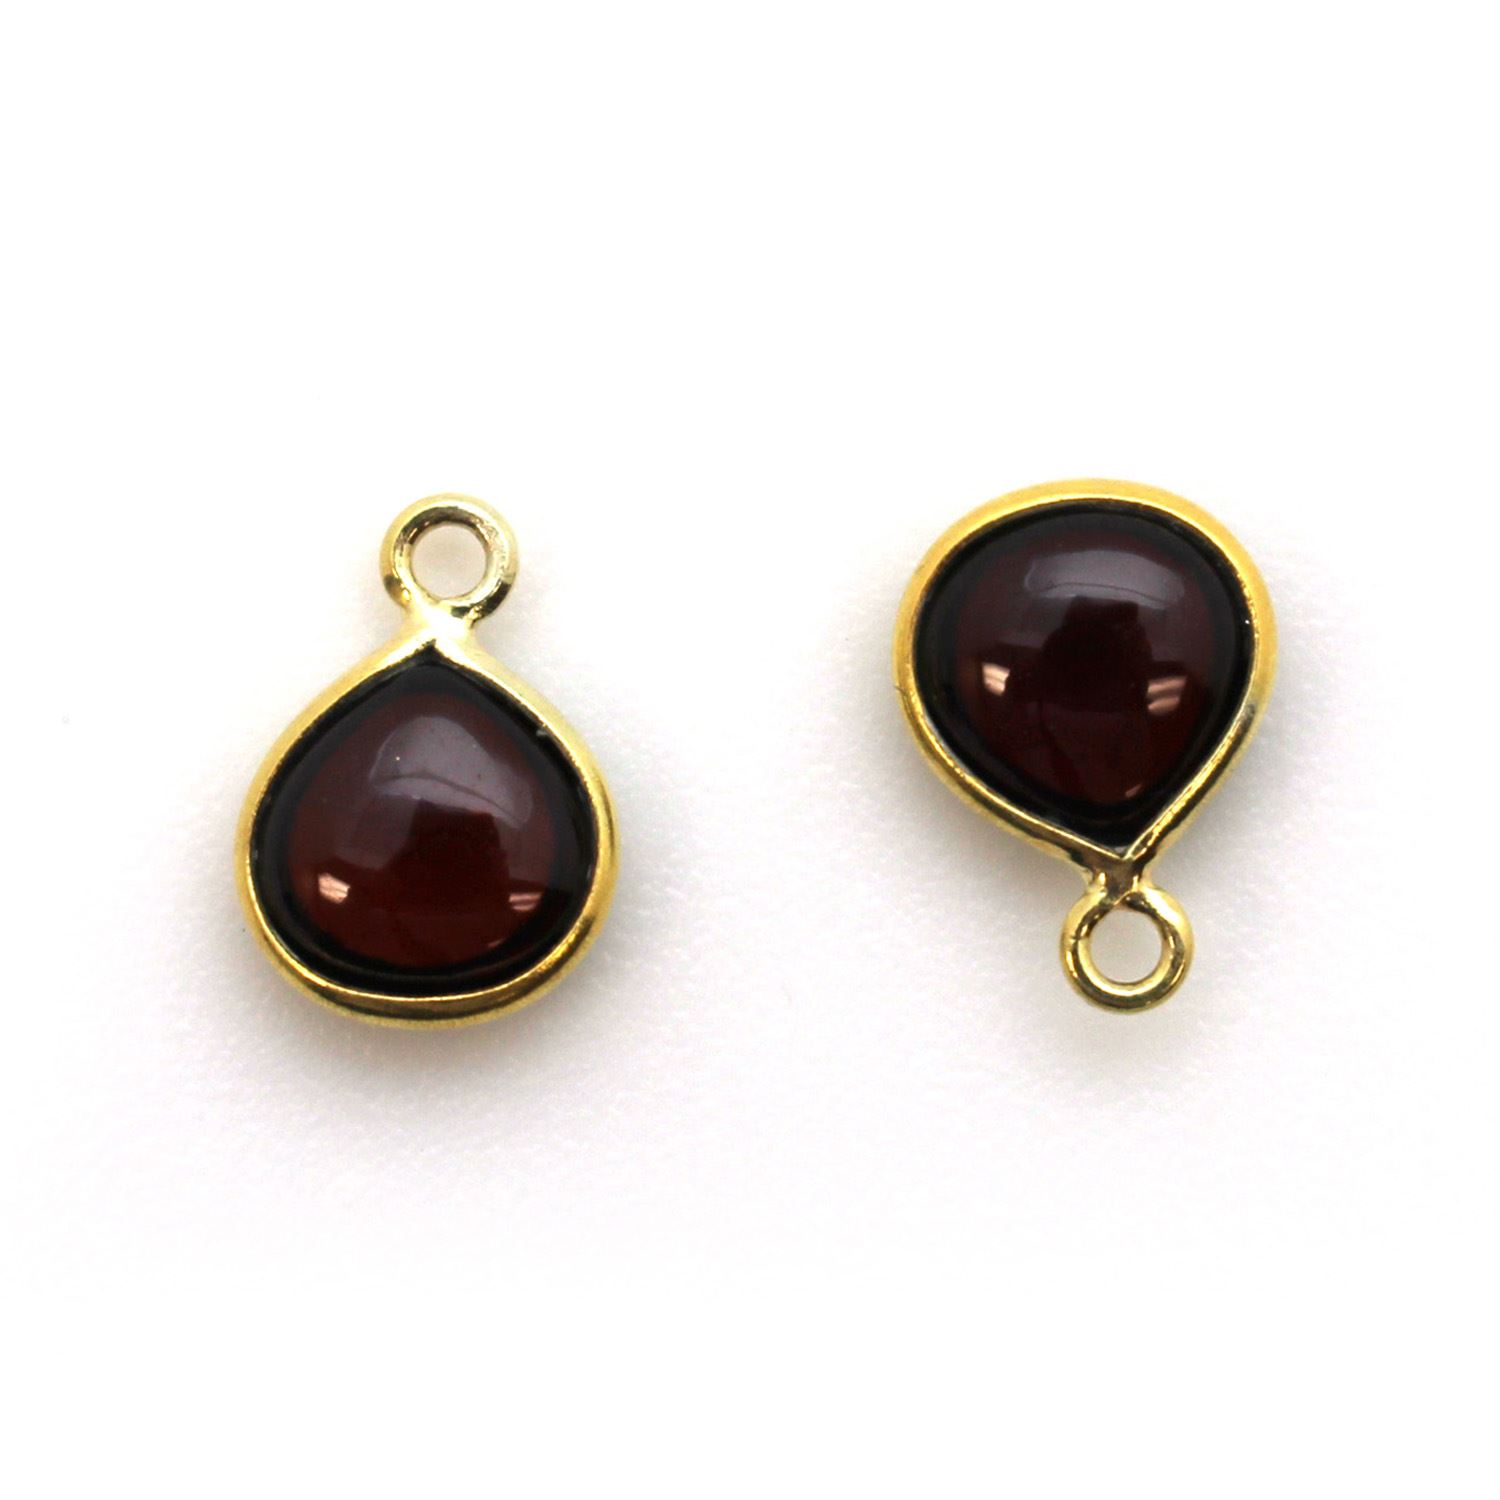 Bezel Charm Pendant - Gold Plated Sterling Silver Charm - Natural Garnet - Tiny Heart Shape -7mm